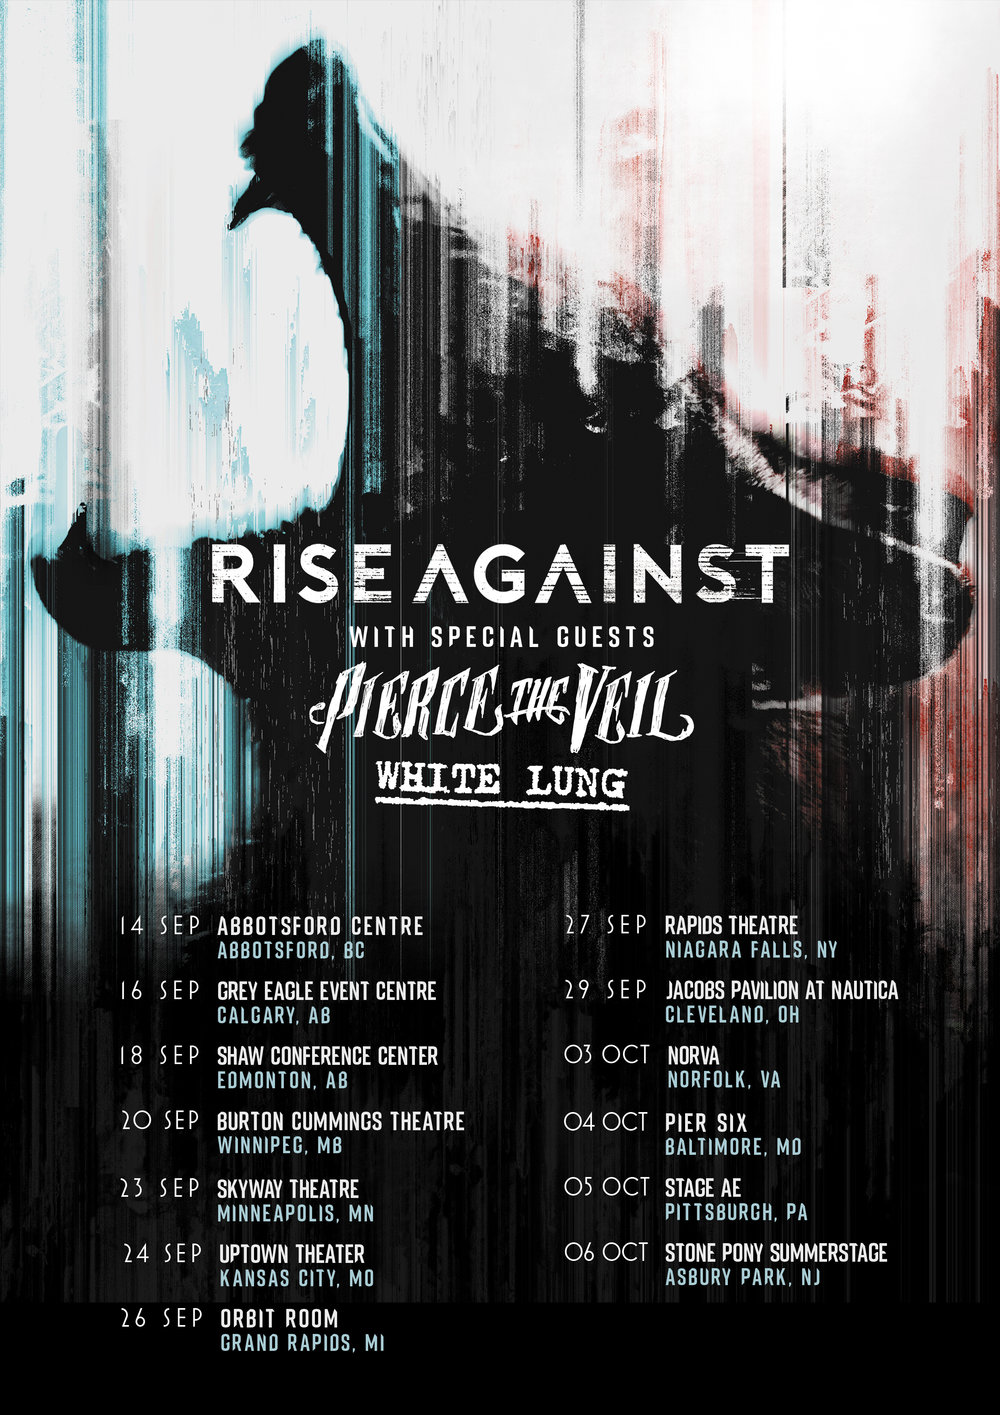 Pierce The Veil Announce Fall Tour Dates With Rise Against The